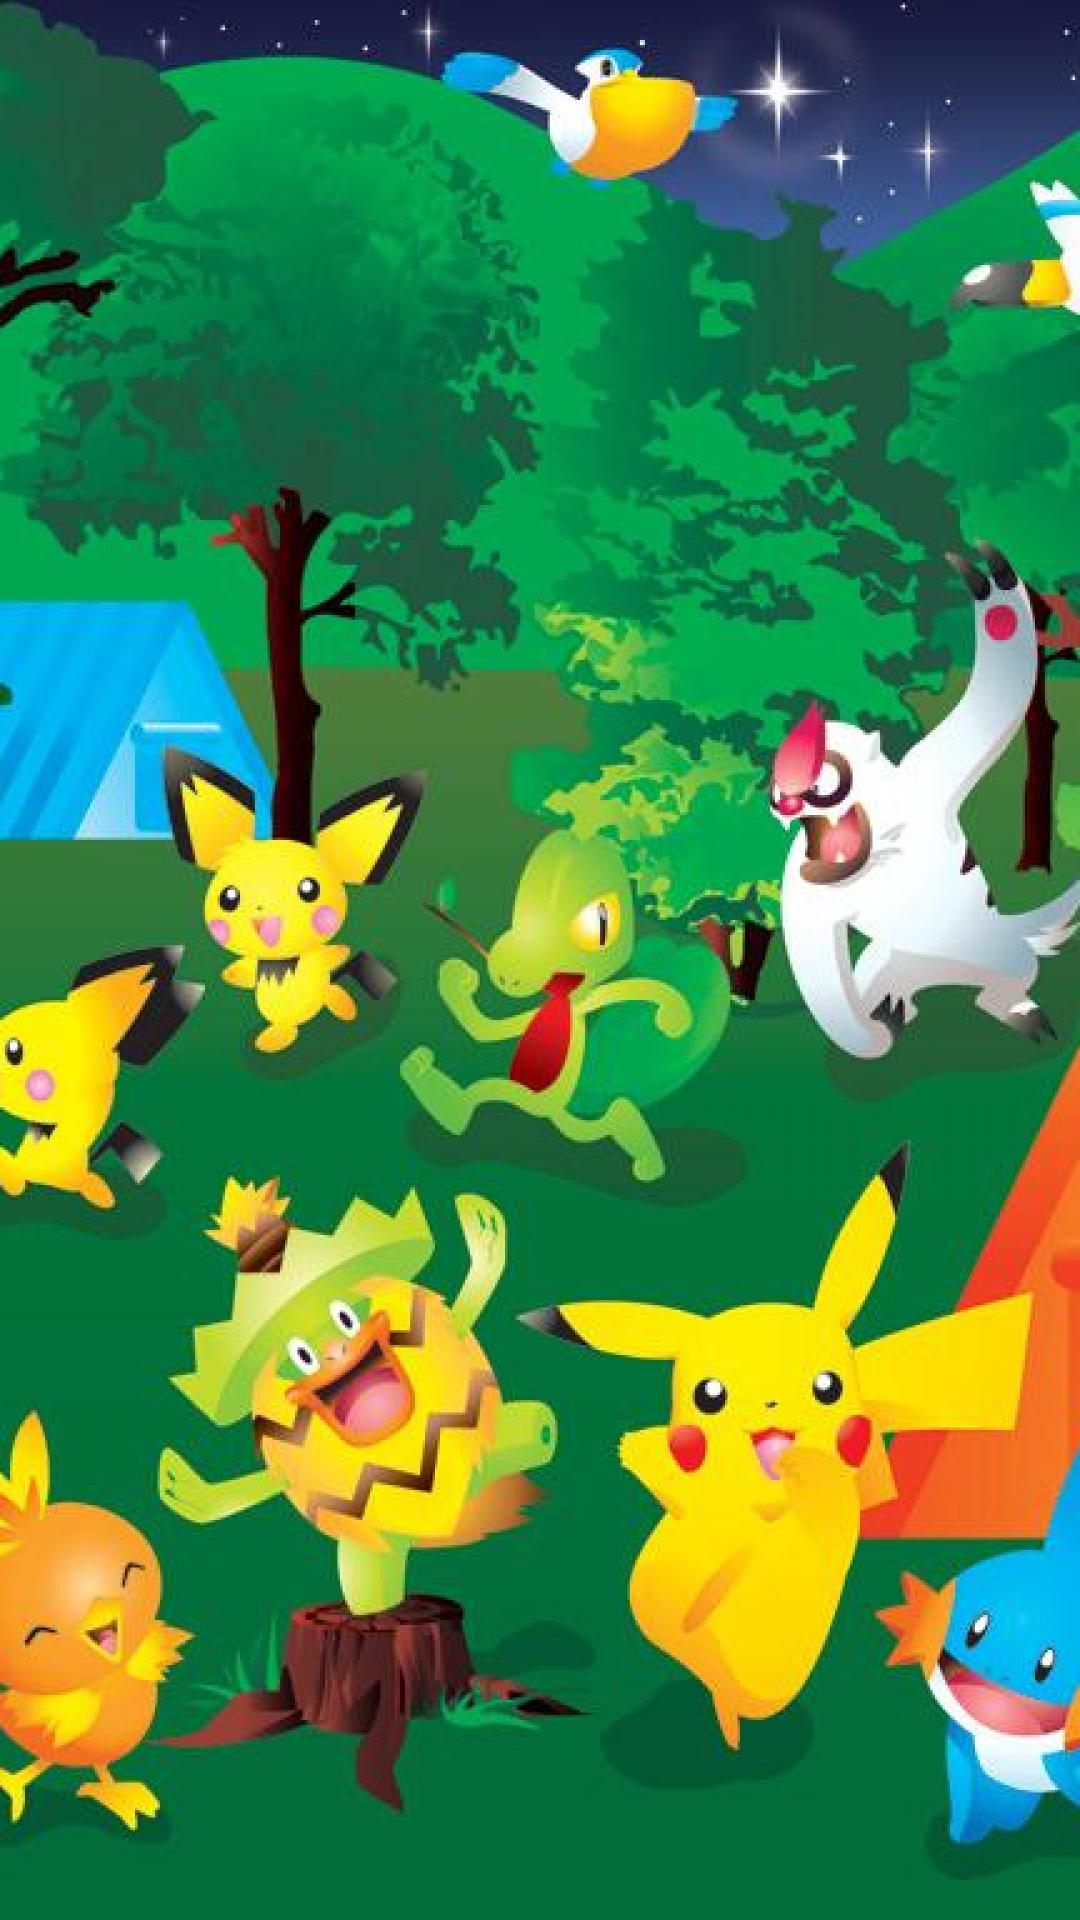 Cute Pokemon Iphone Wallpapers Free Pokemon Iphone Wallpapers Pixelstalk Net